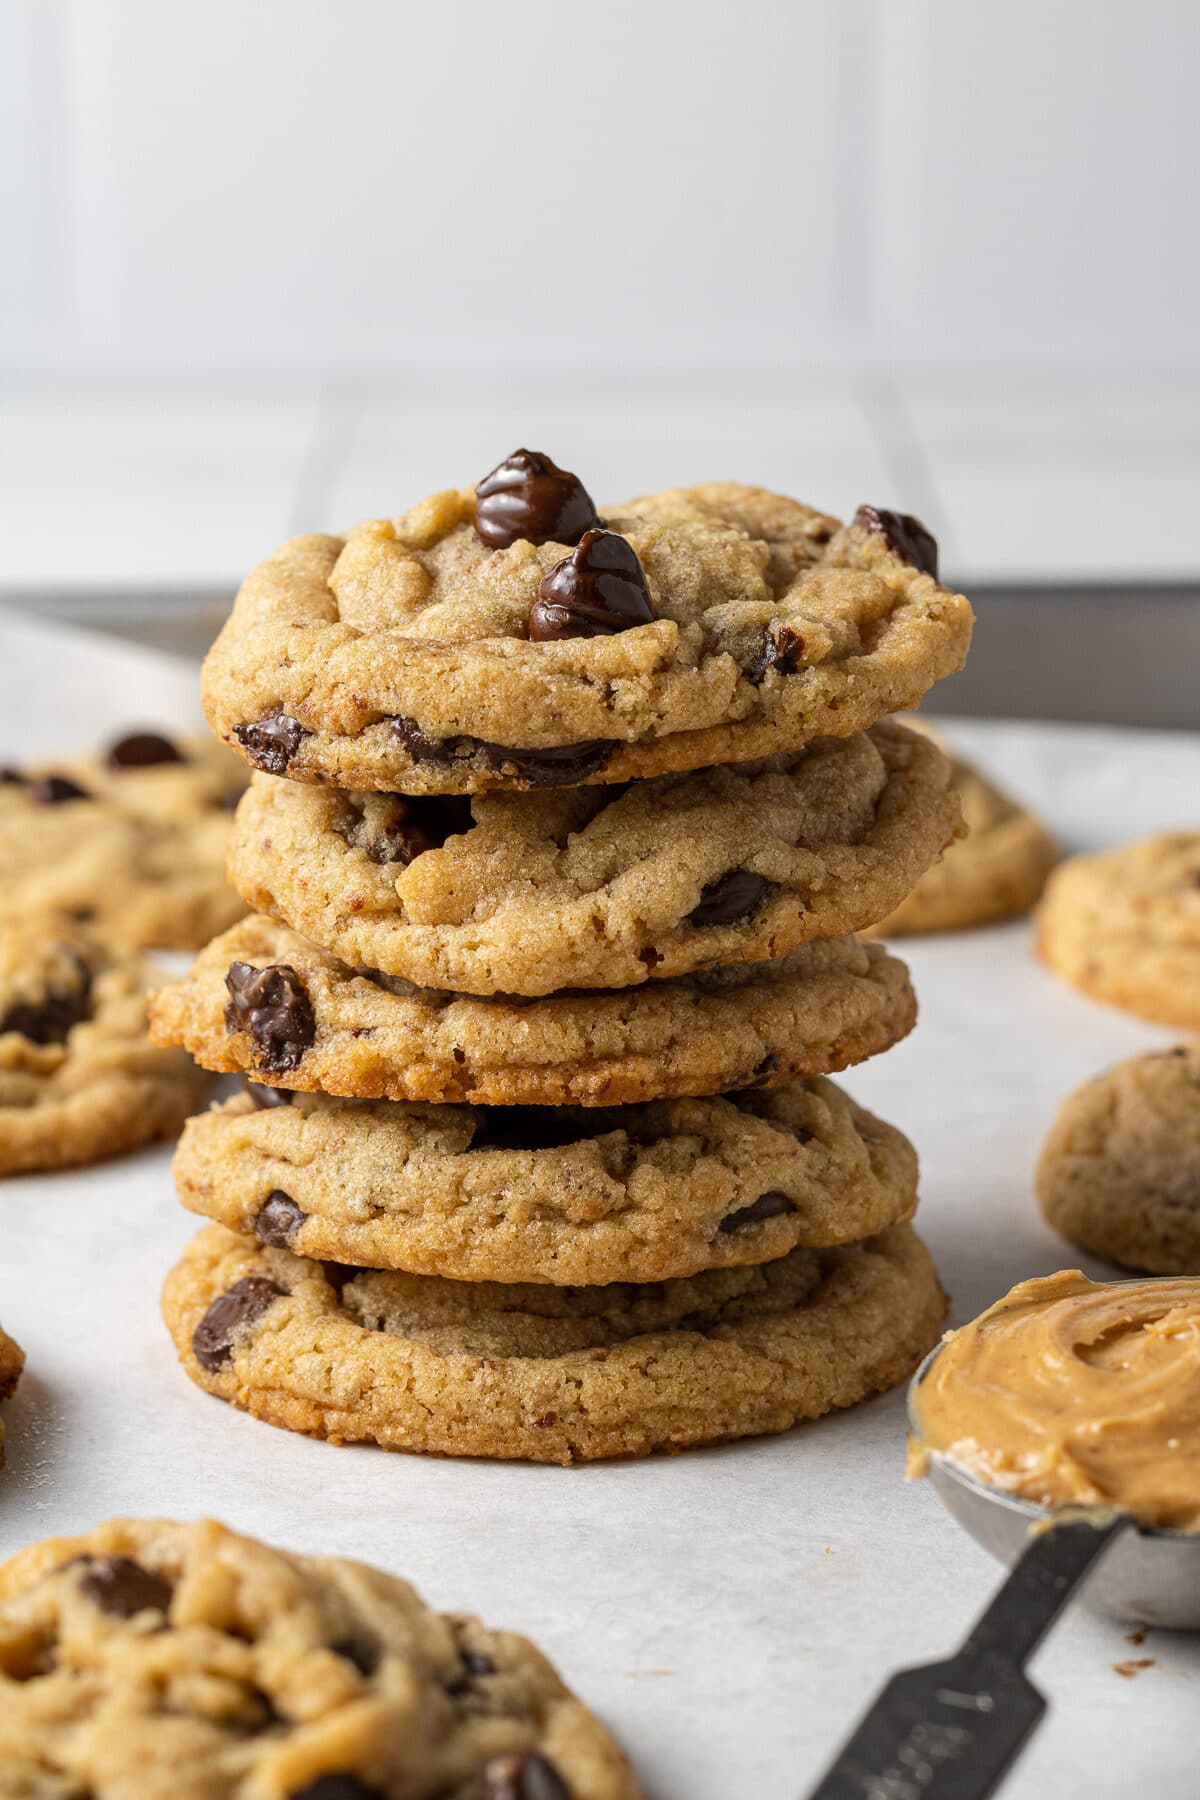 vegan peanut butter cookies stacked on each other with more cookies around them